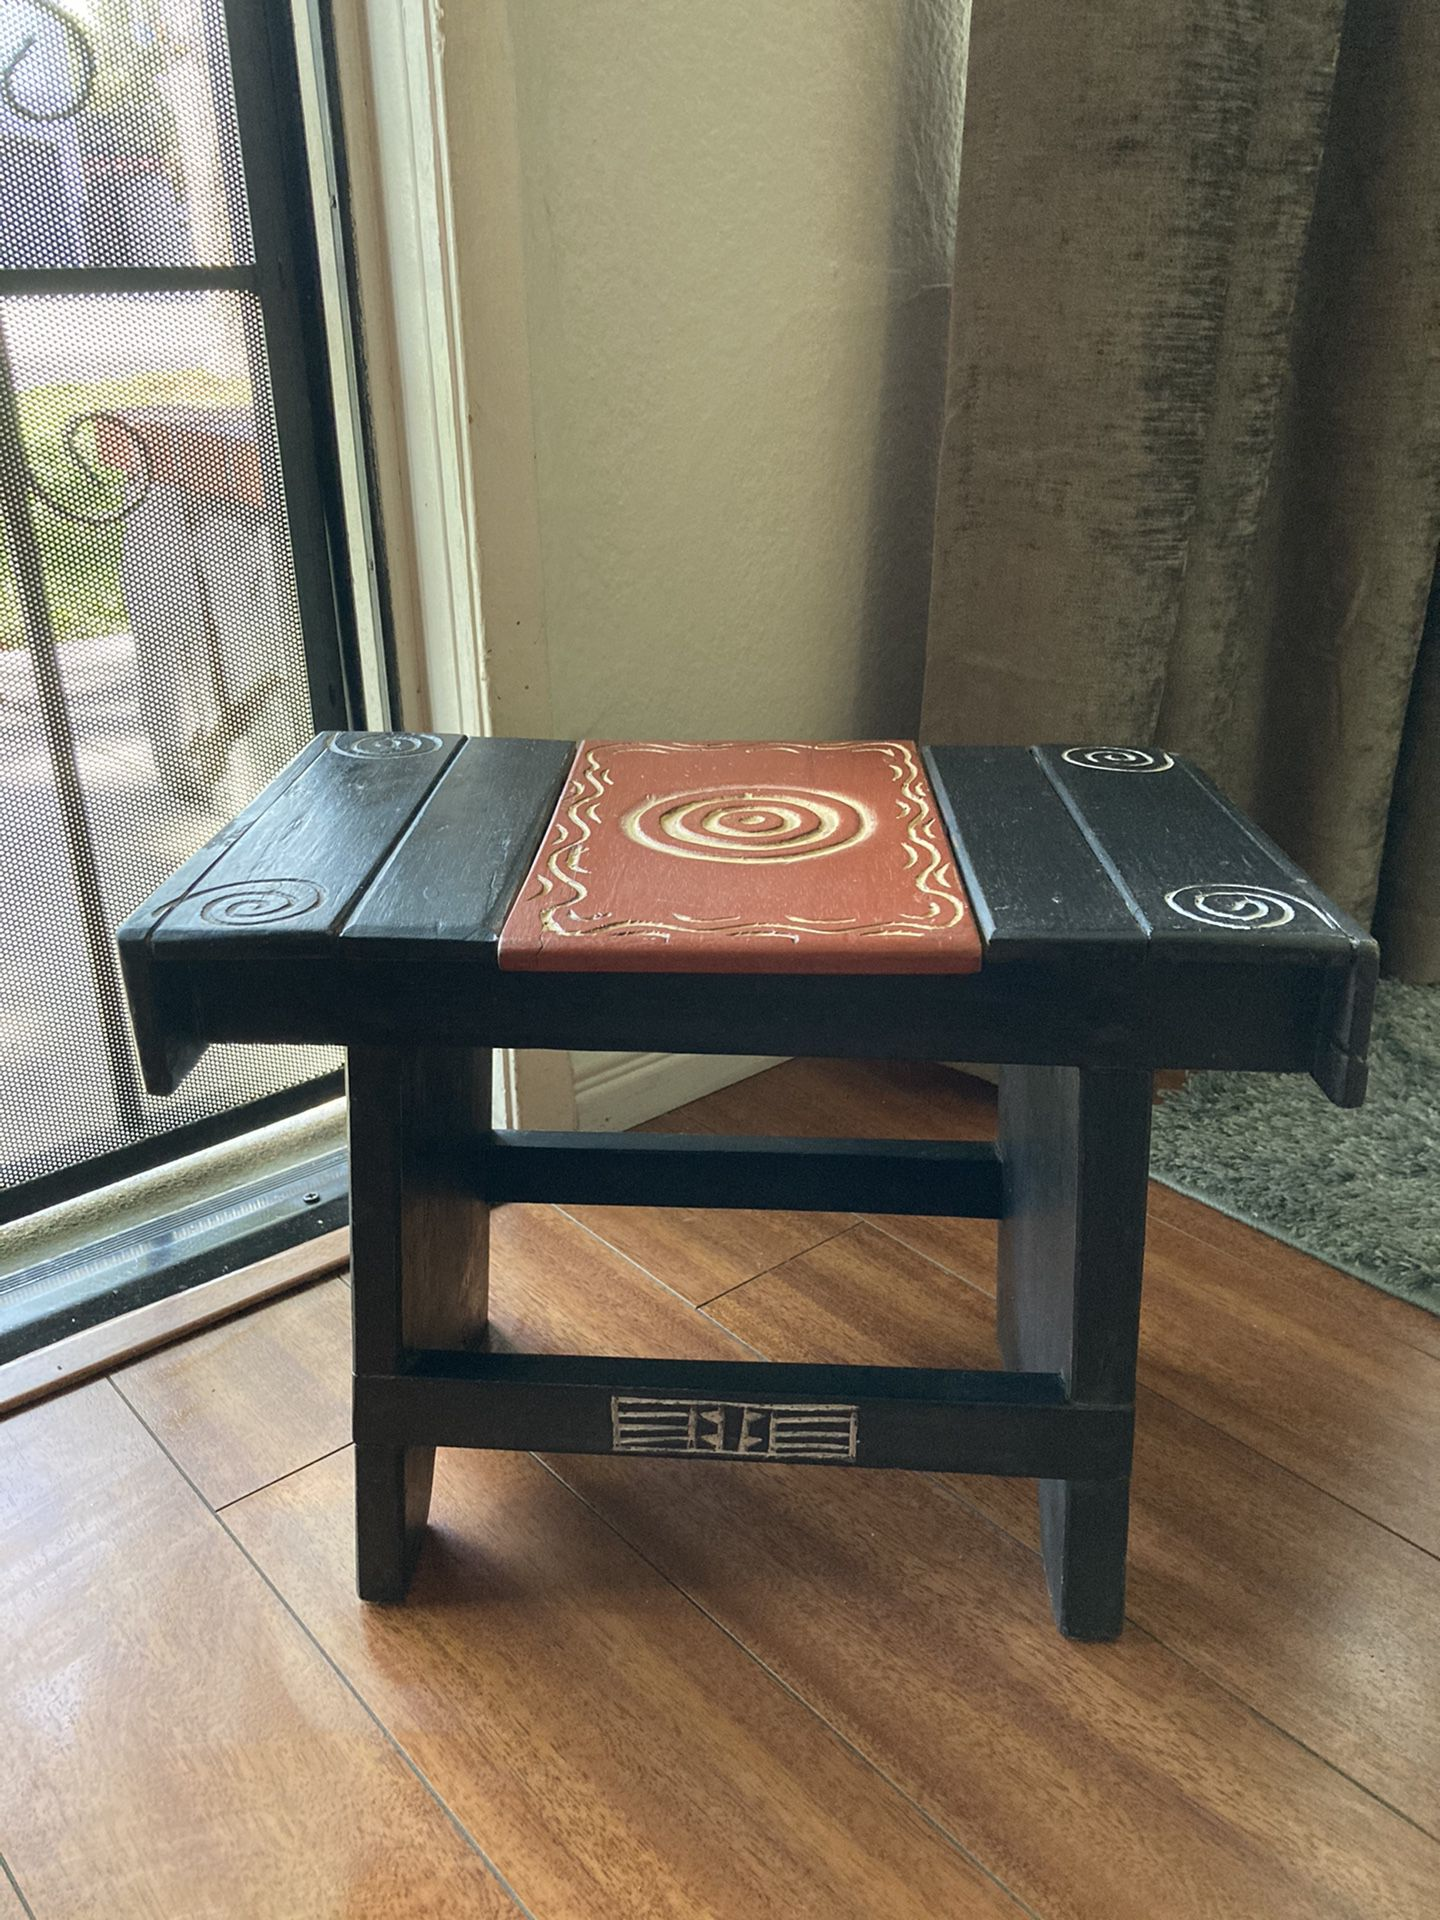 Wooden Handmade carved Step stool